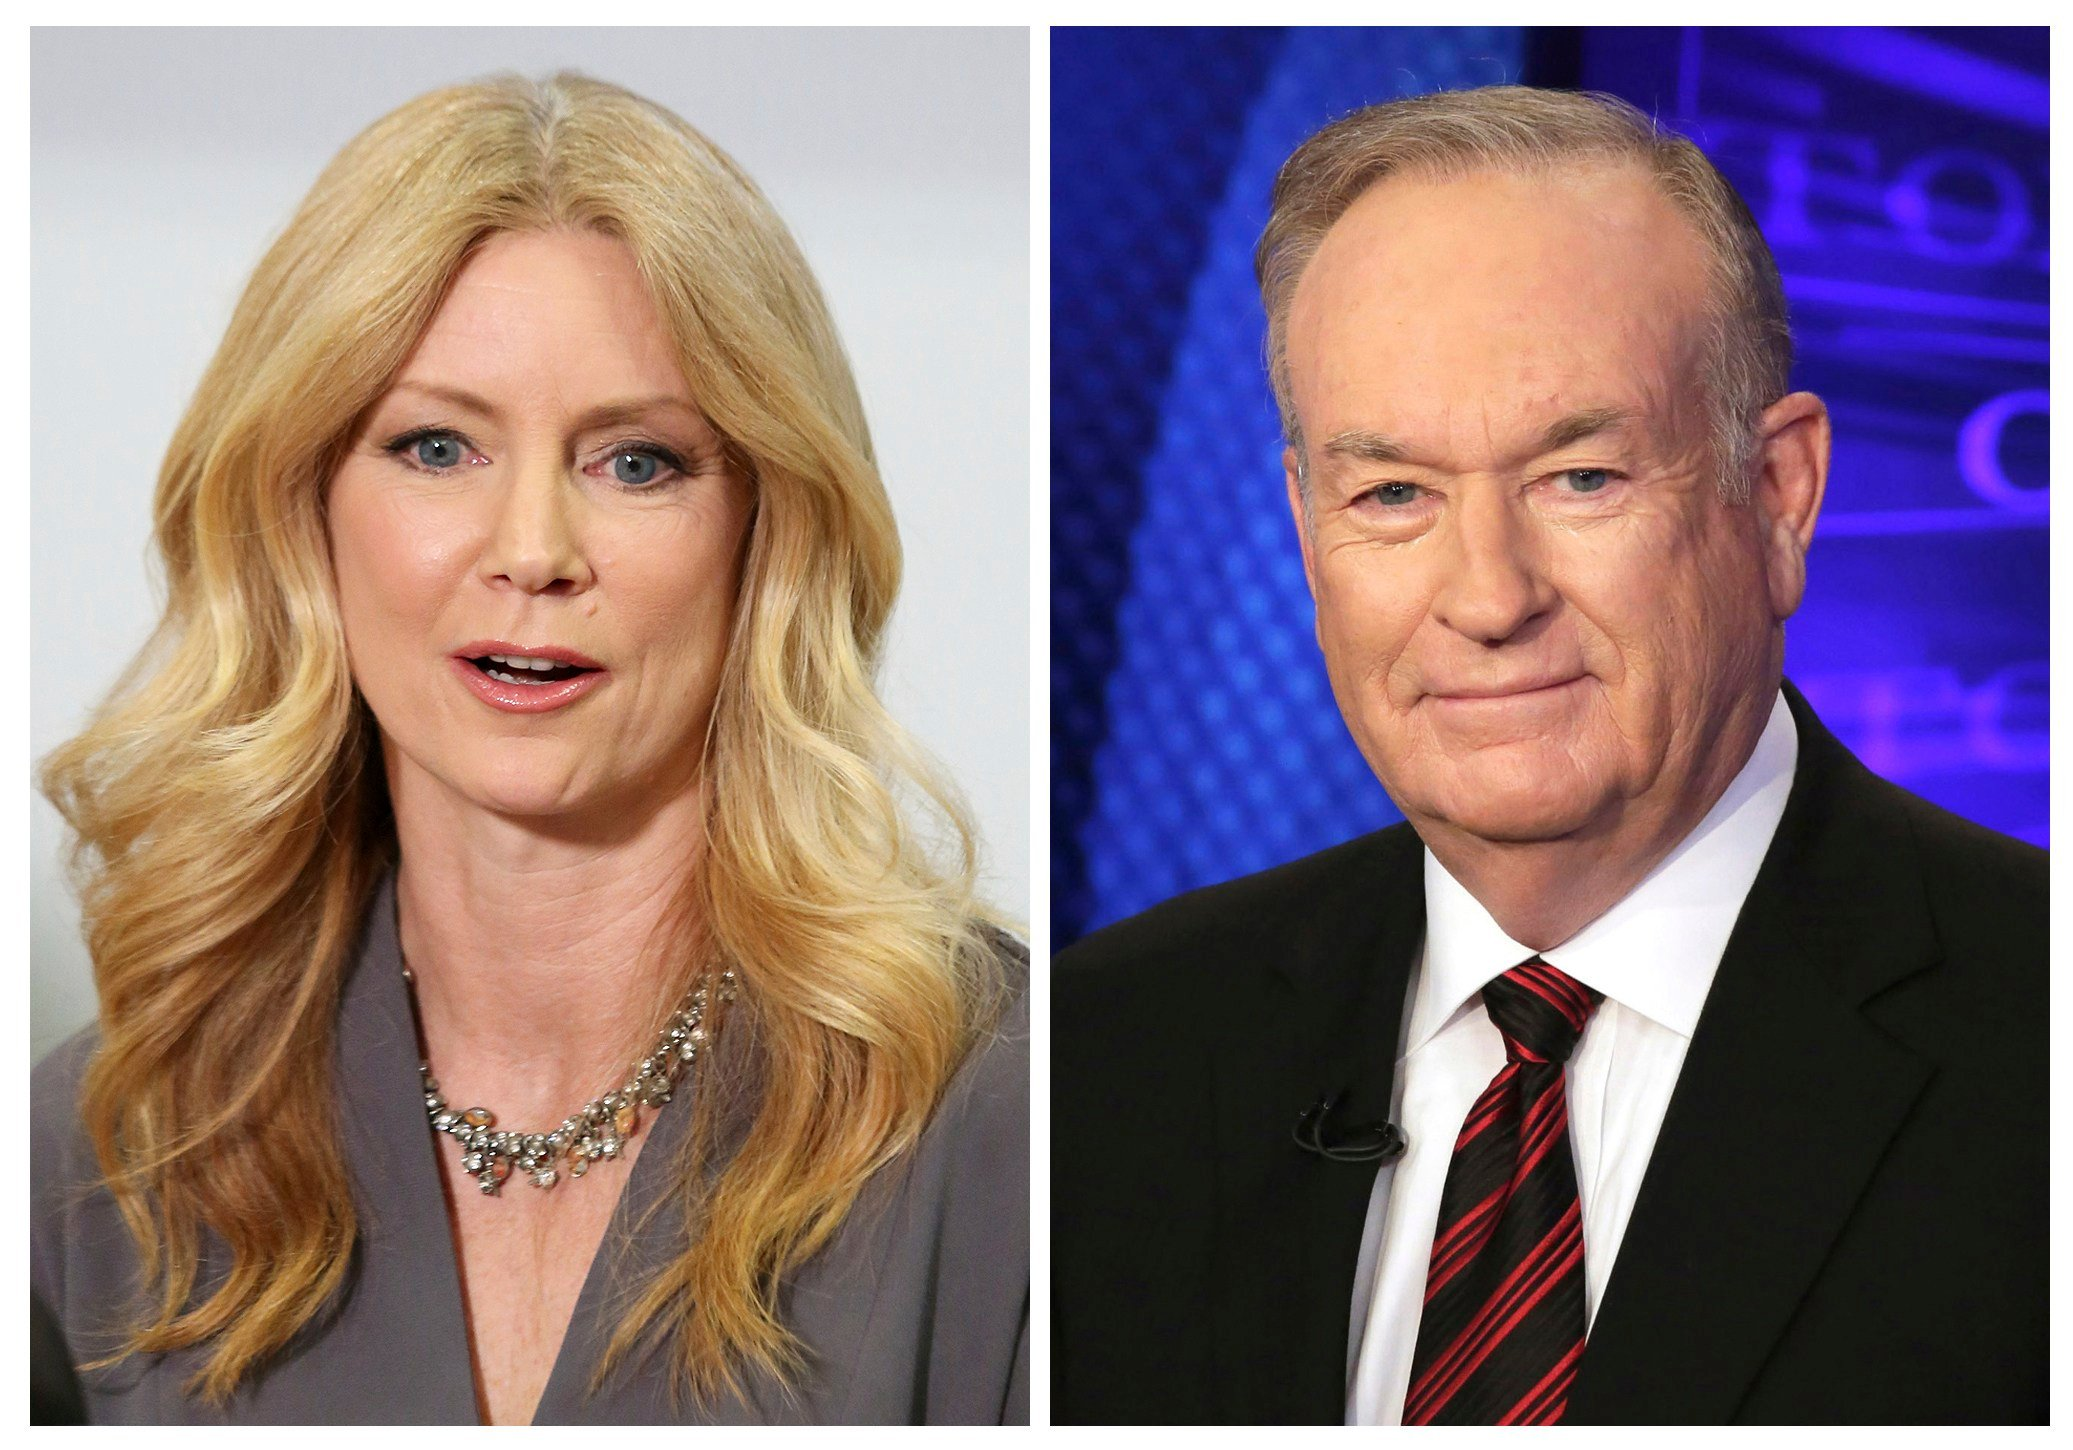 Former Fox News contributor Wendy Walsh appears at a news conference and Fox News personality Bill O'Reilly appears on the set of his show. (AP Photo/Anthony McCartney, left, and Richard Drew, Files)